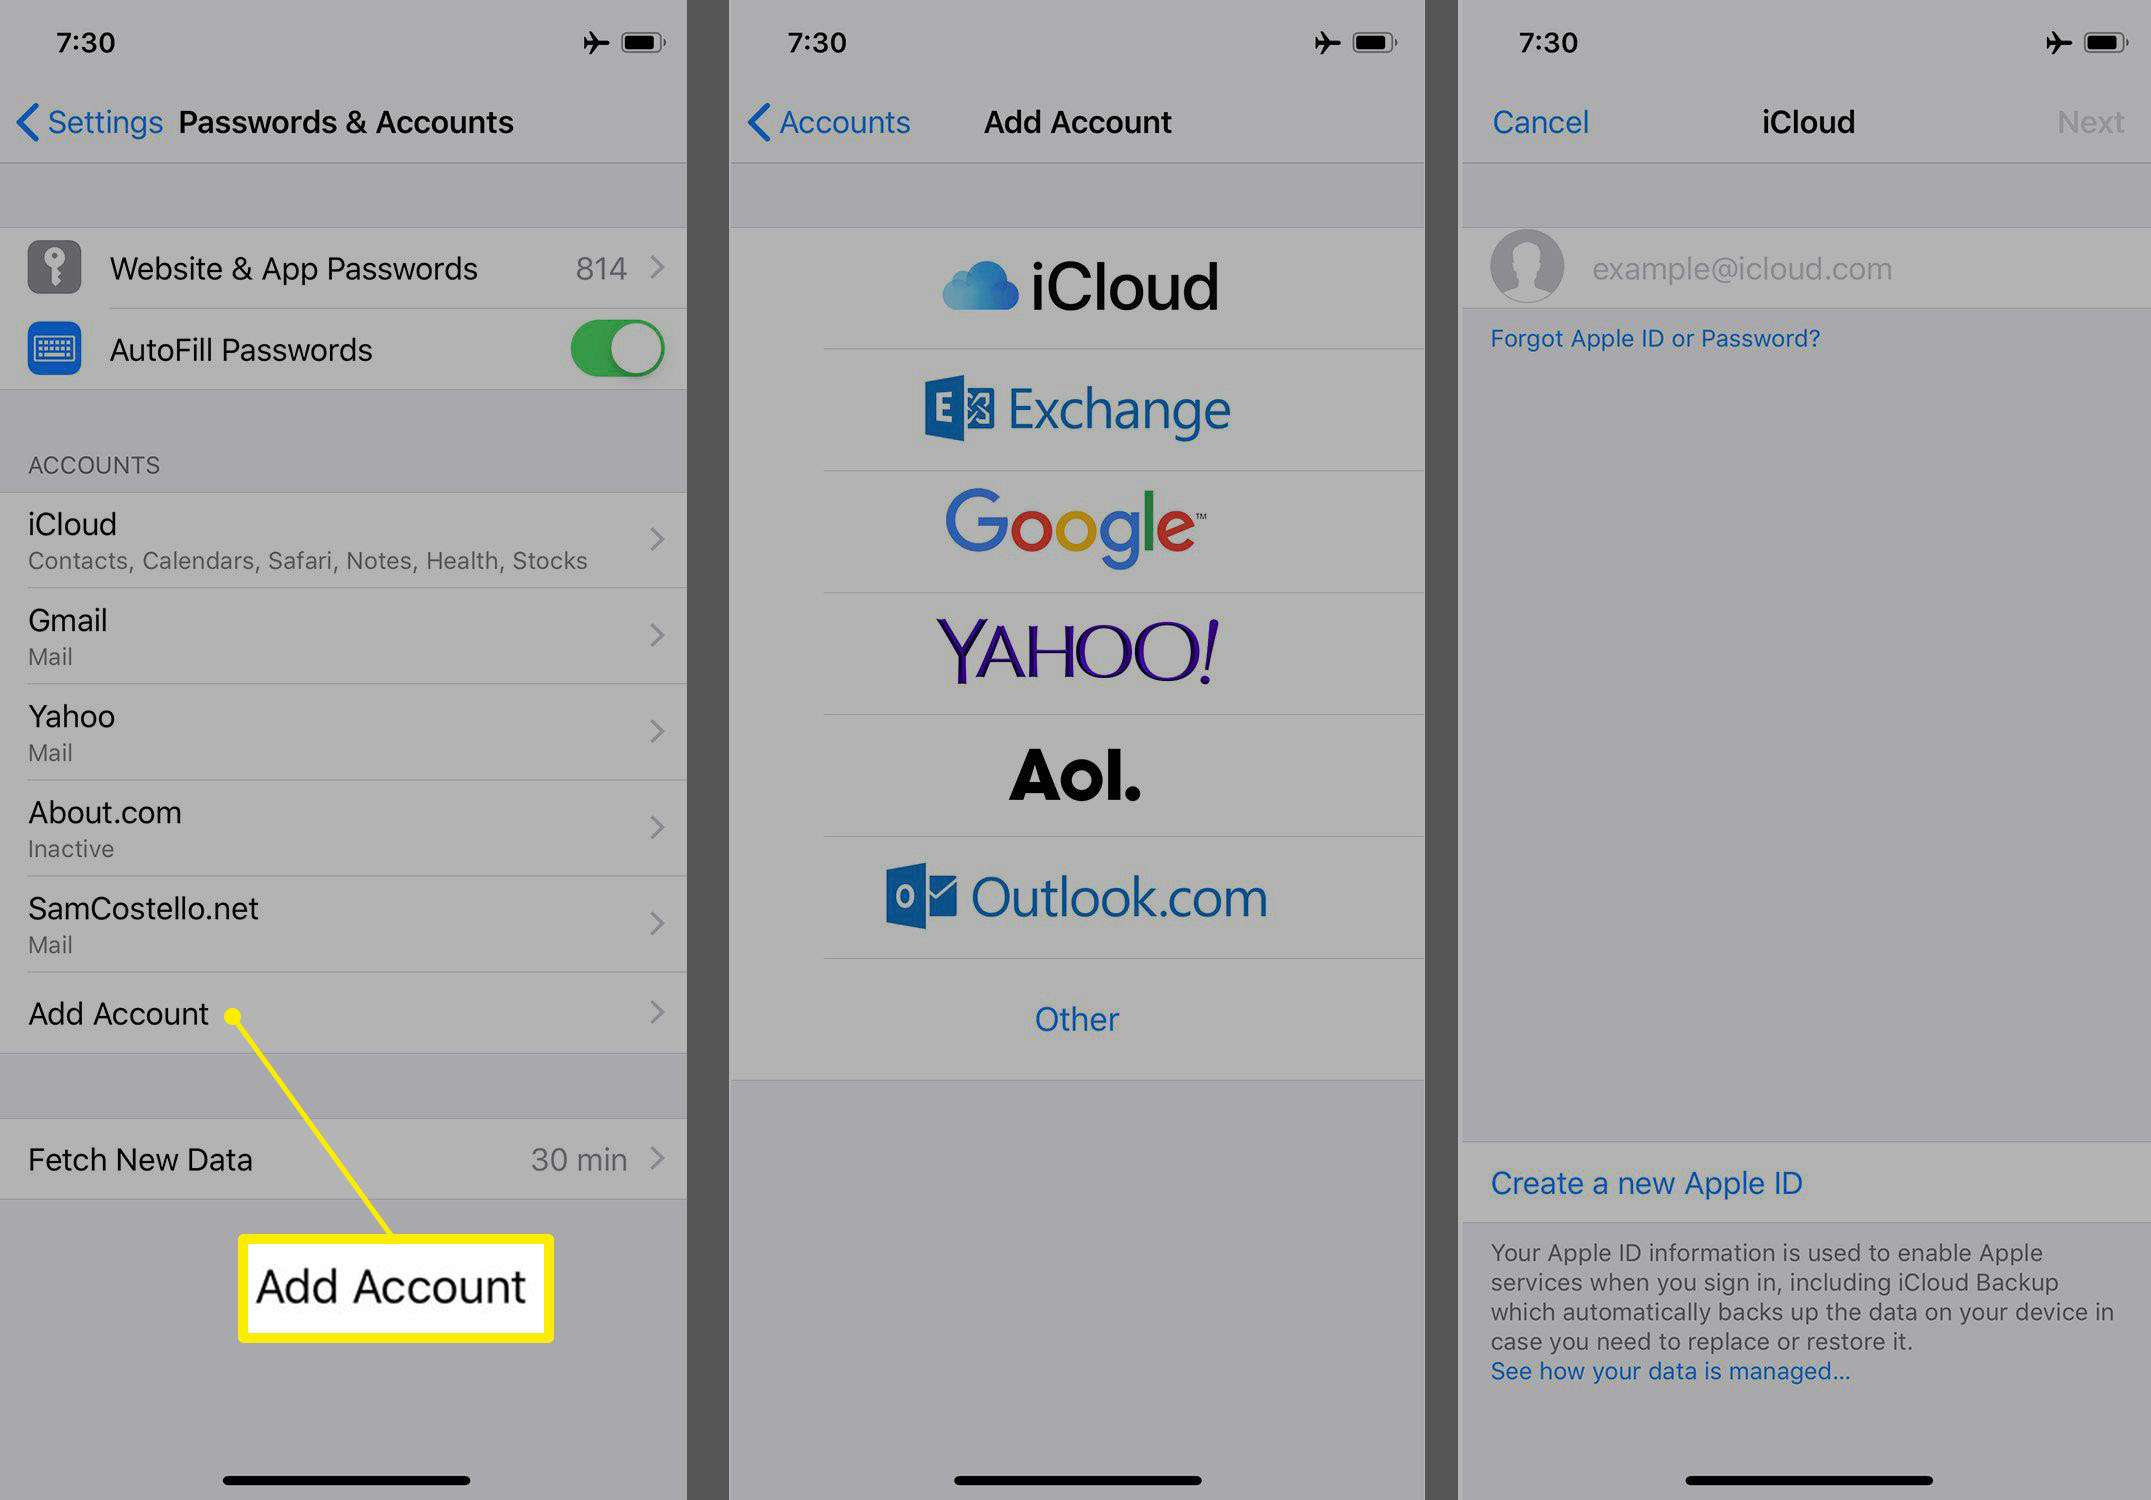 How to Add Another Email Account to Your iPhone